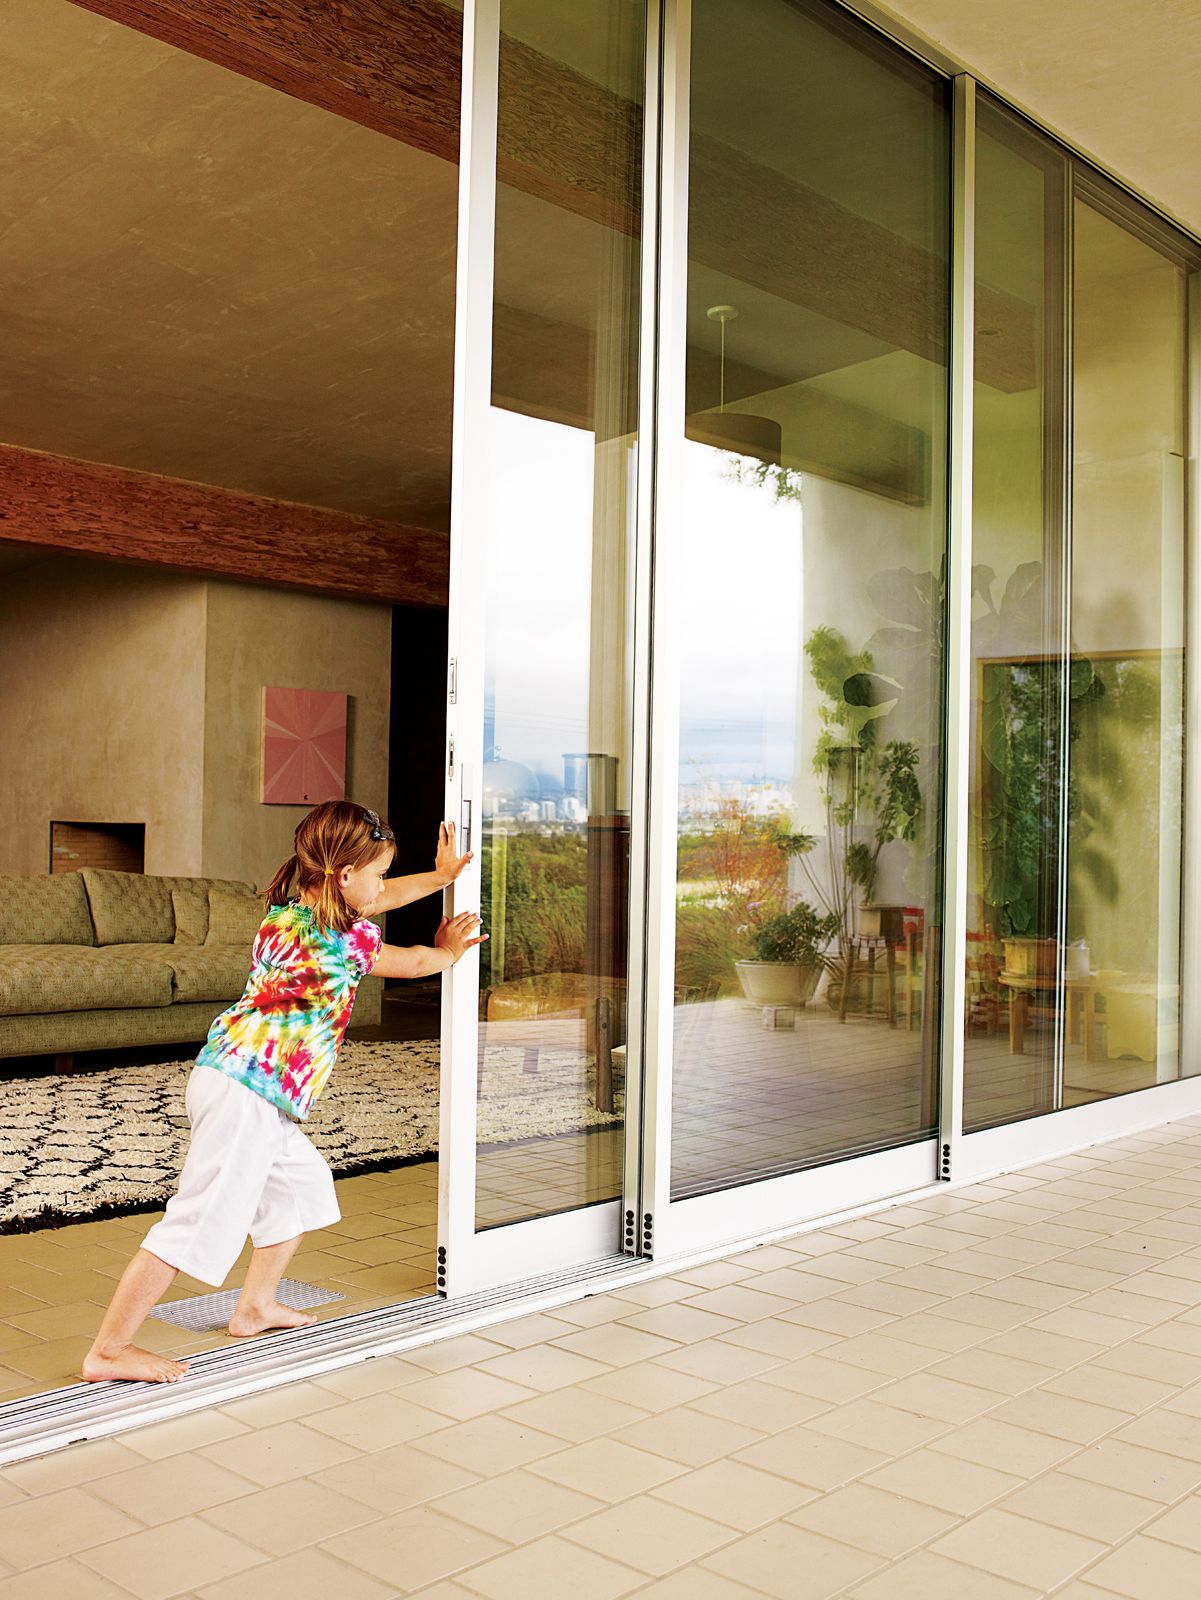 Los Angeles Renovation By Escher Gunewardena Bungalow Renovation House Design Sliding Glass Door